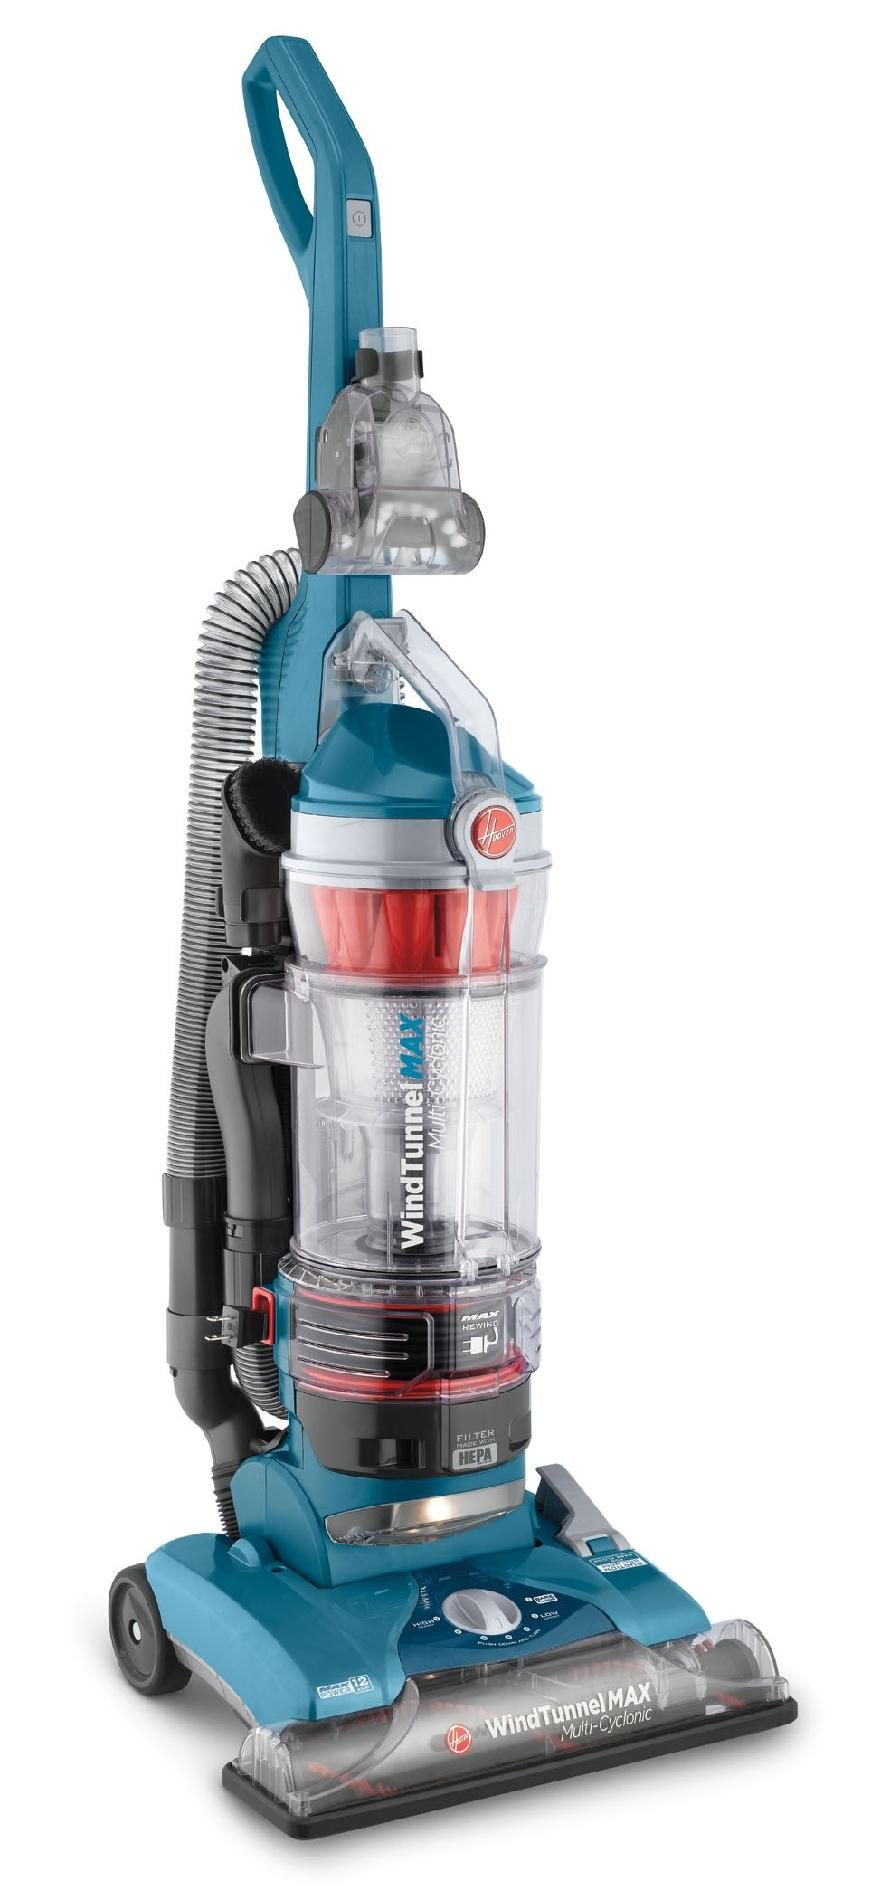 Hoover Wind Tunnel Max Vacuum, Bagless Upright, Multi-Cyclonic, 1 vacuum